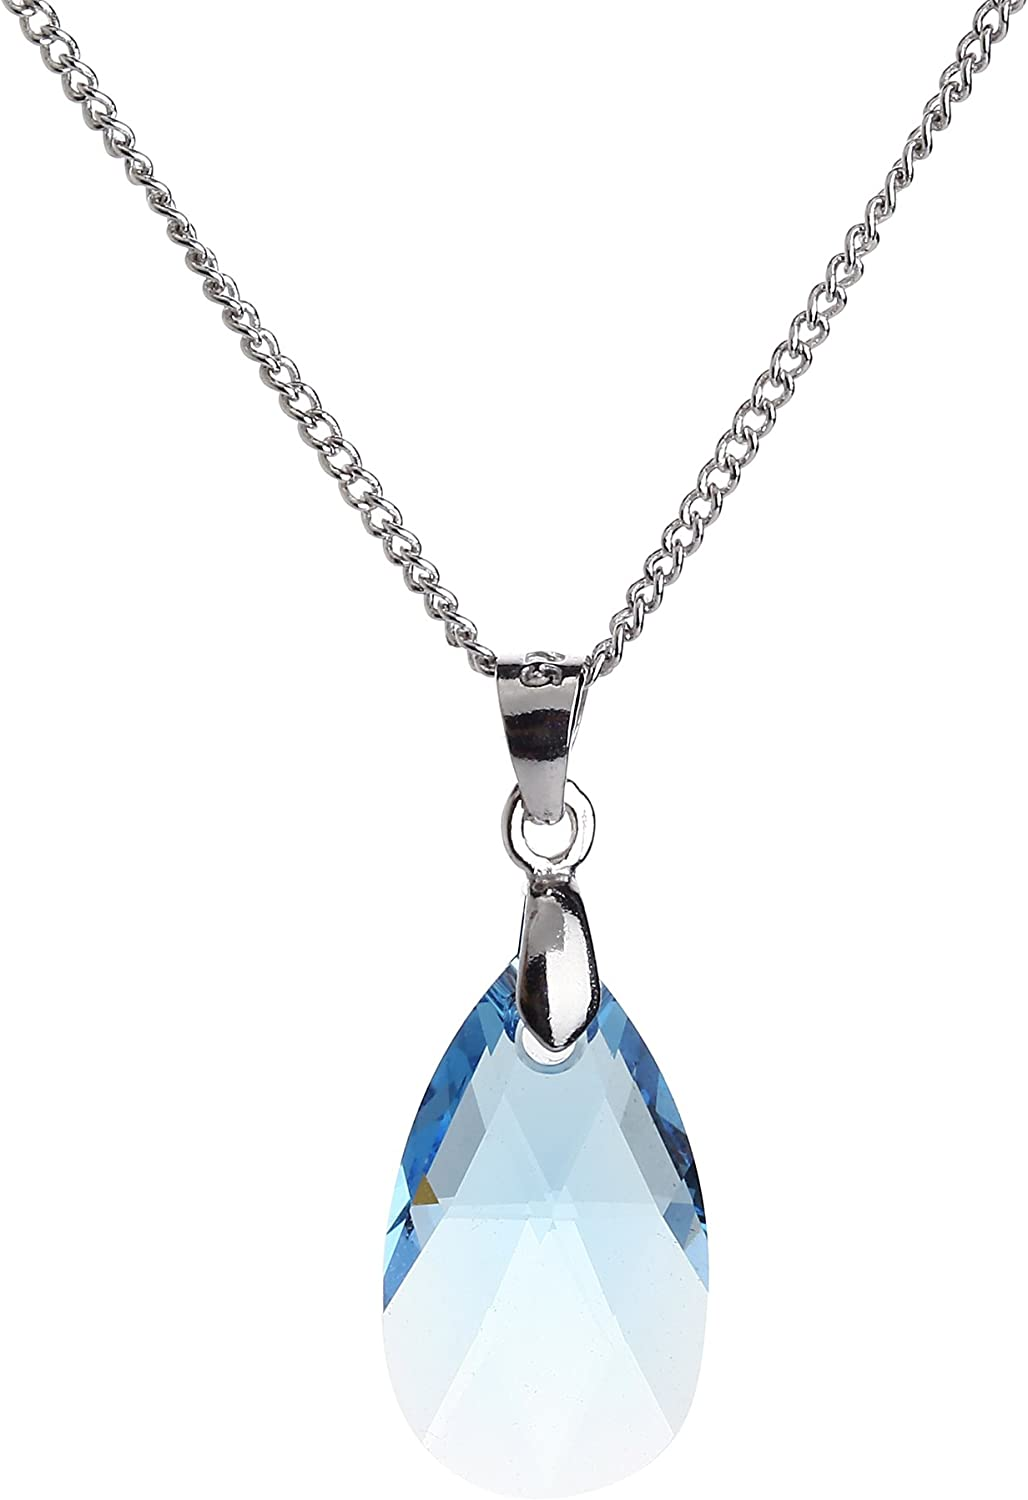 Kruckel The Shape of Water White Gold Plated Necklace Made with Swarovski Crystals - NES0050